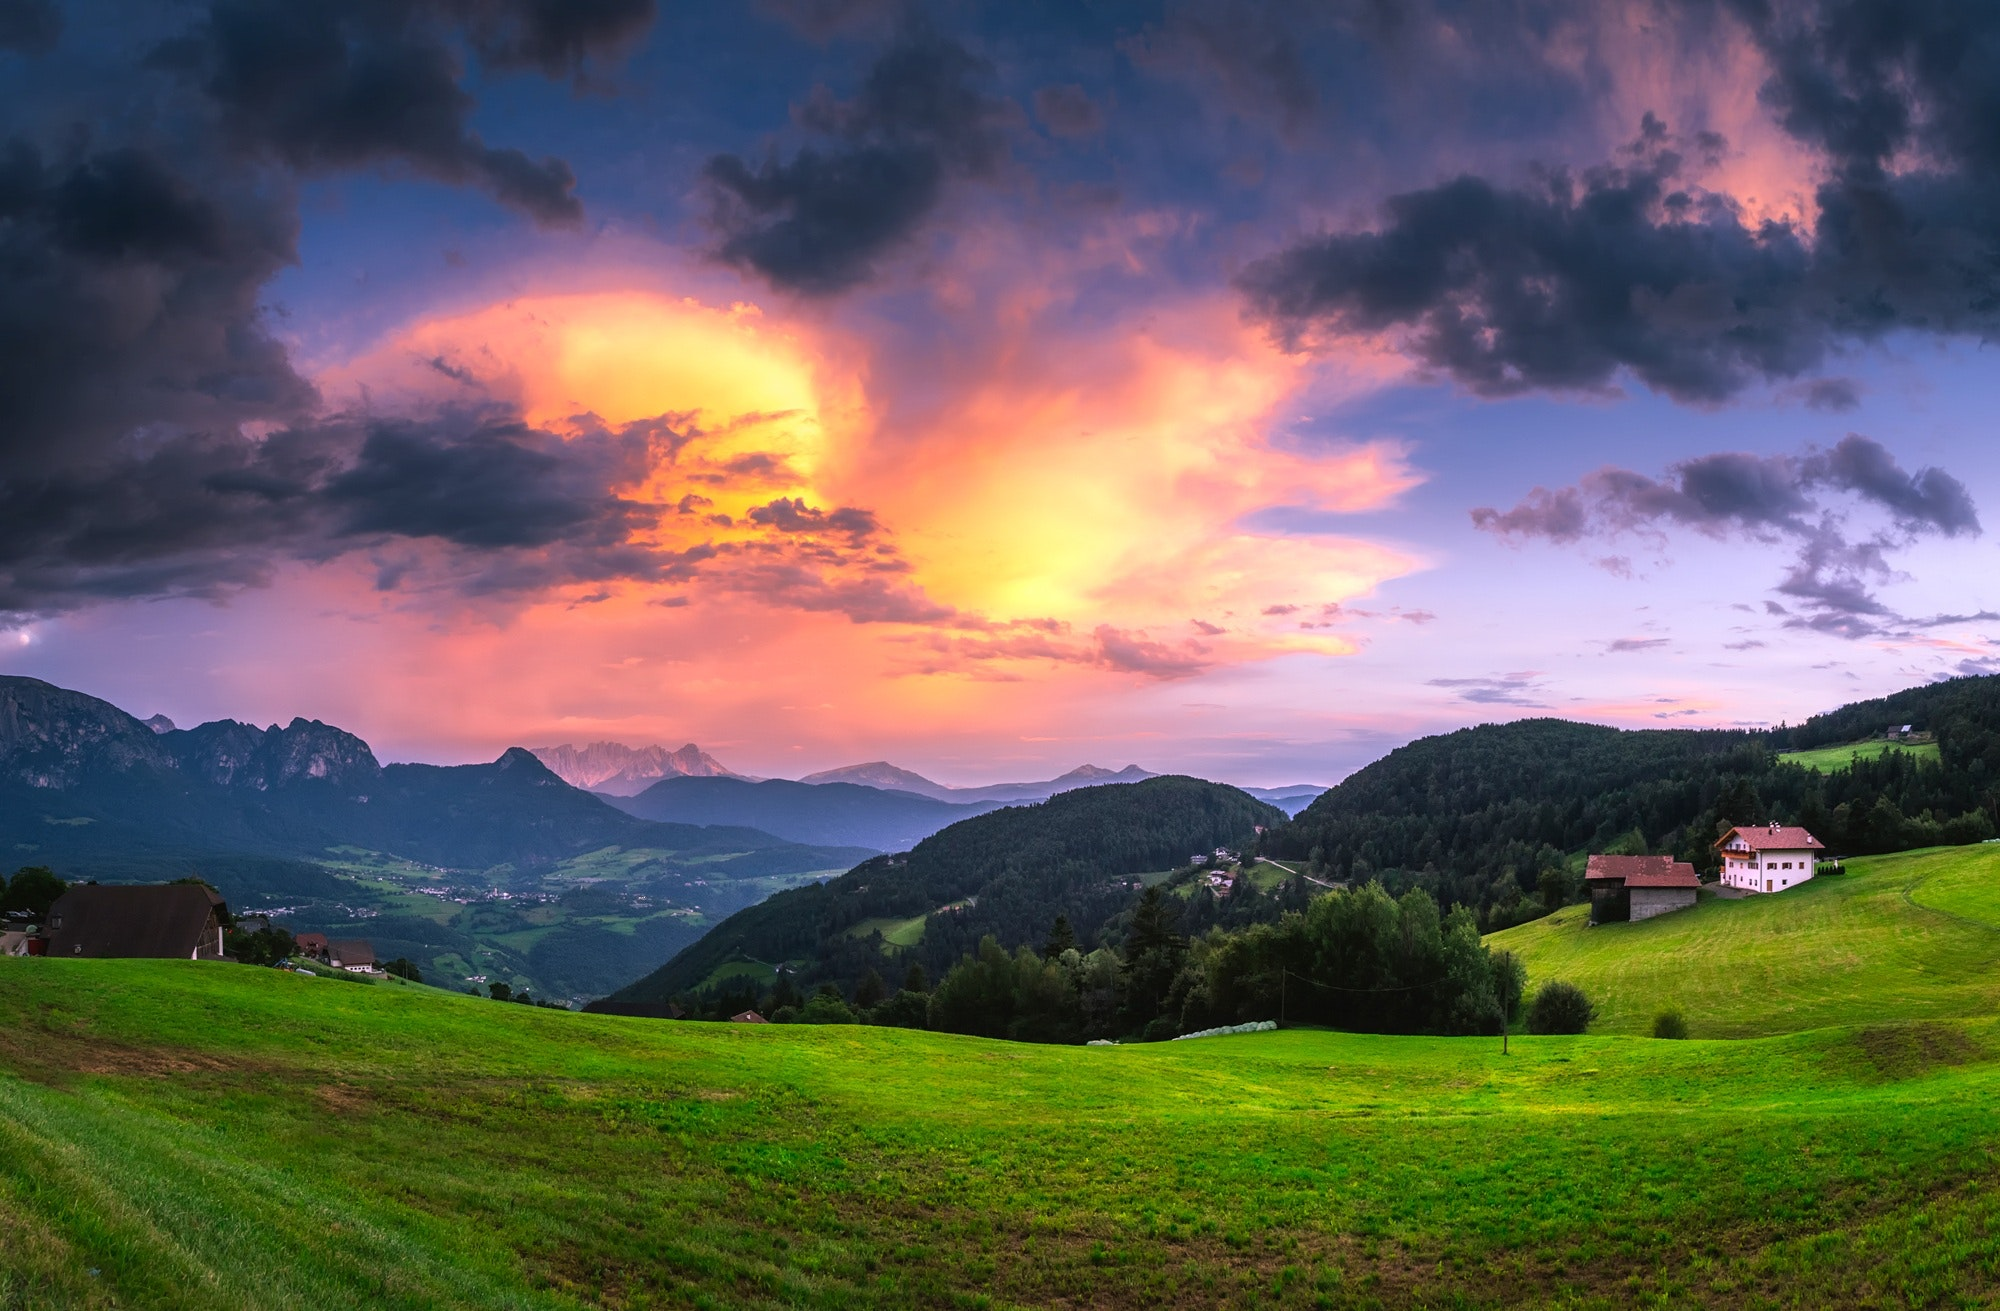 Scenic view of landscape against cloudy sky photo